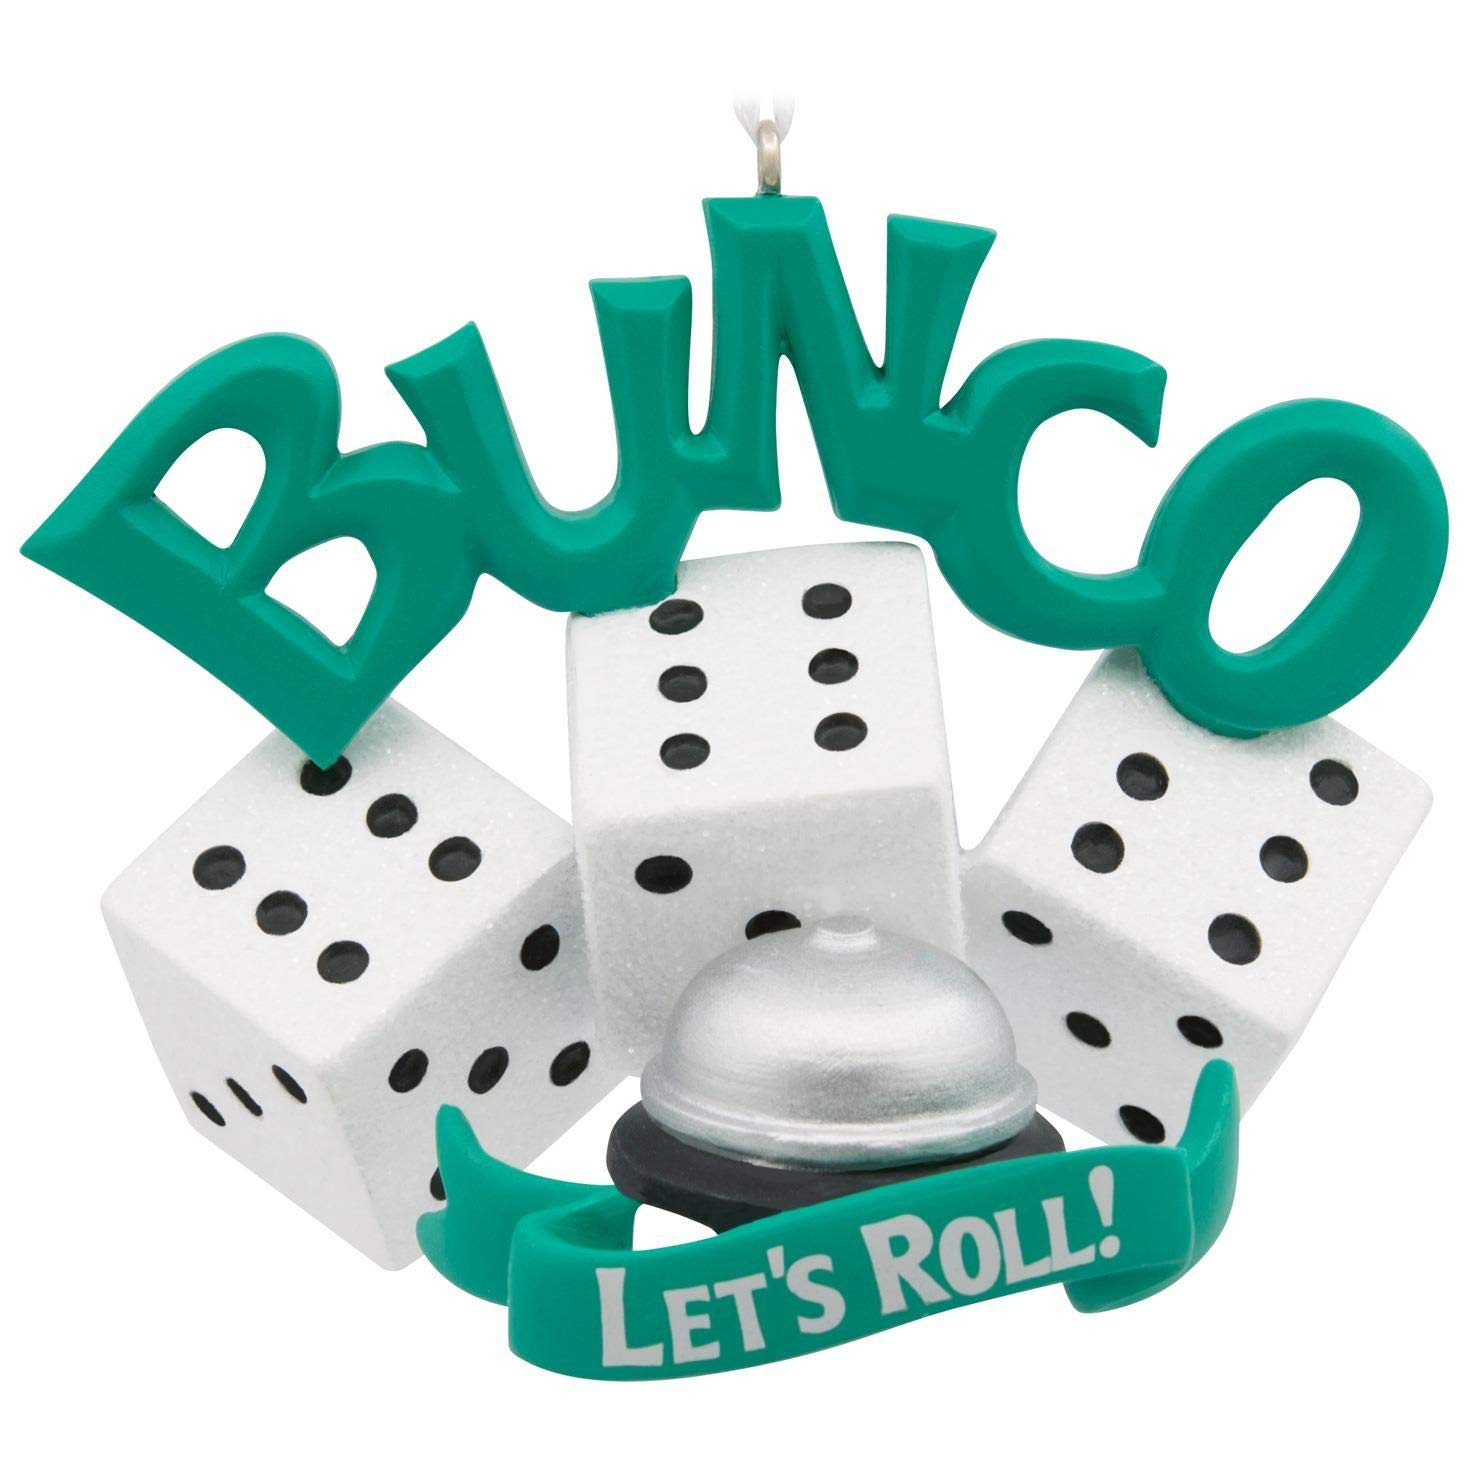 Amazon.com: Hallmark Bunco Ornament Hobbies & Interests: Home & Kitchen